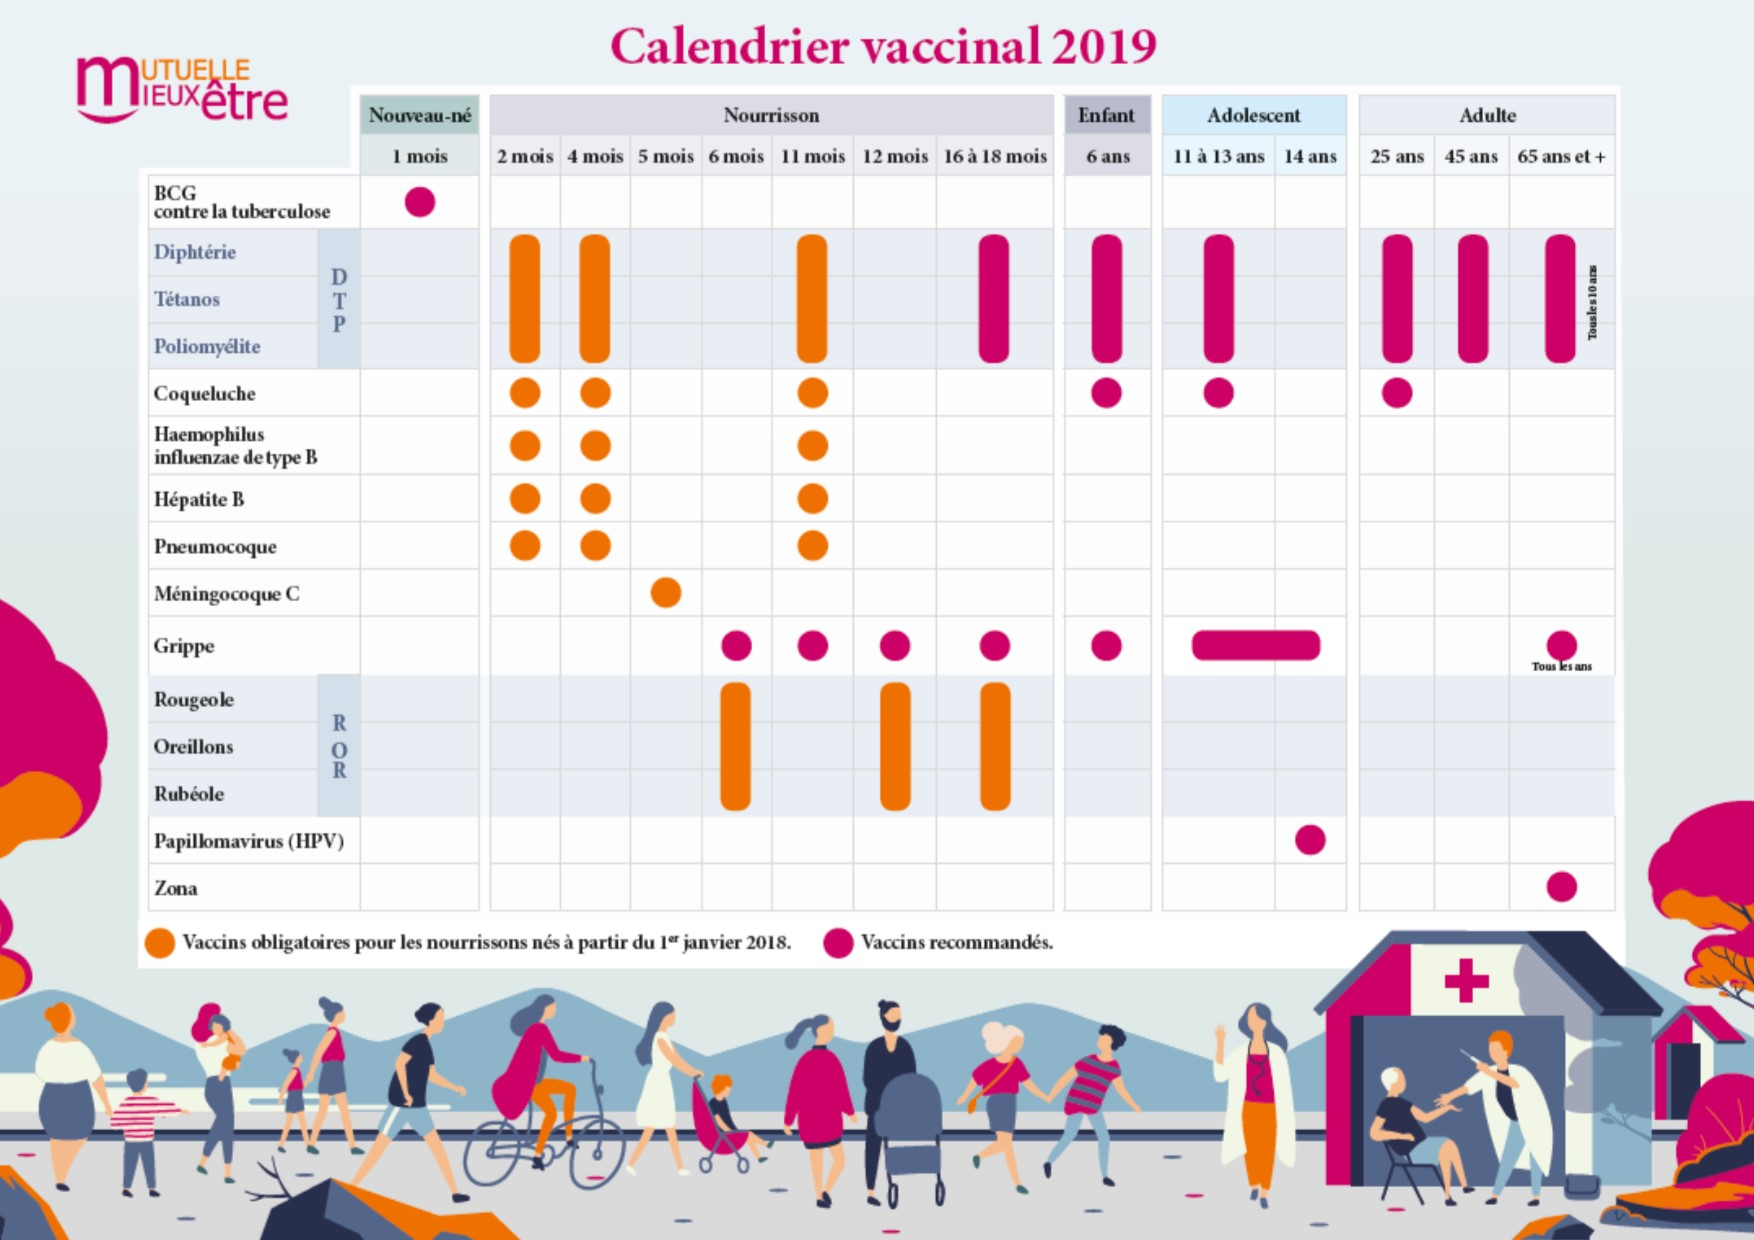 Calendrier - vaccinal